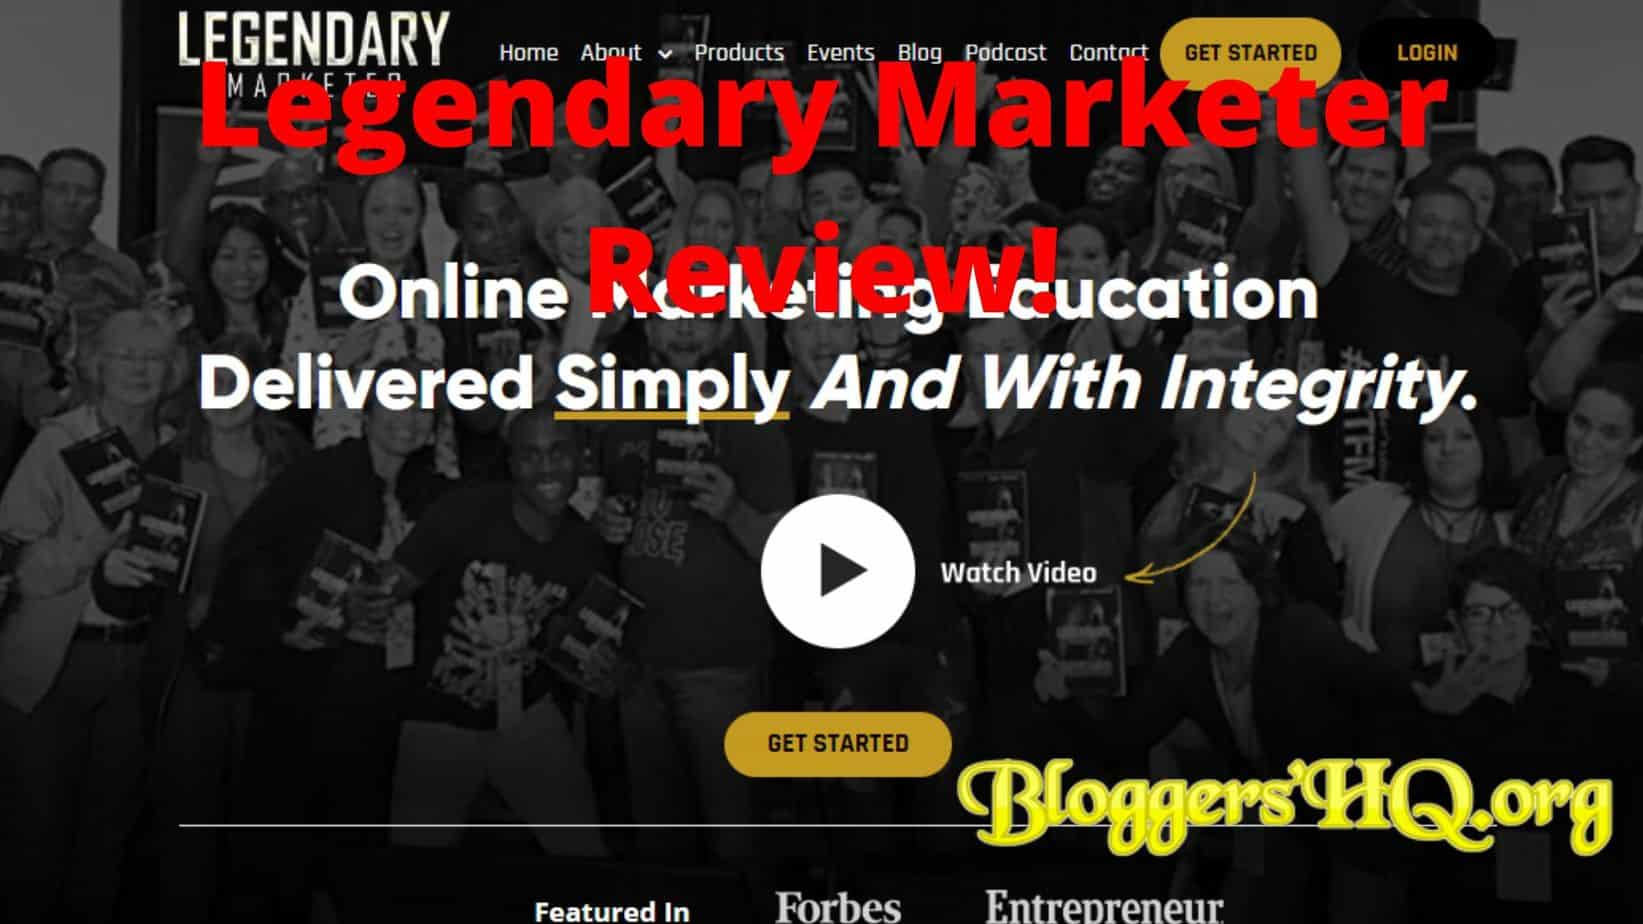 Legendary Marketer Warranty Registration